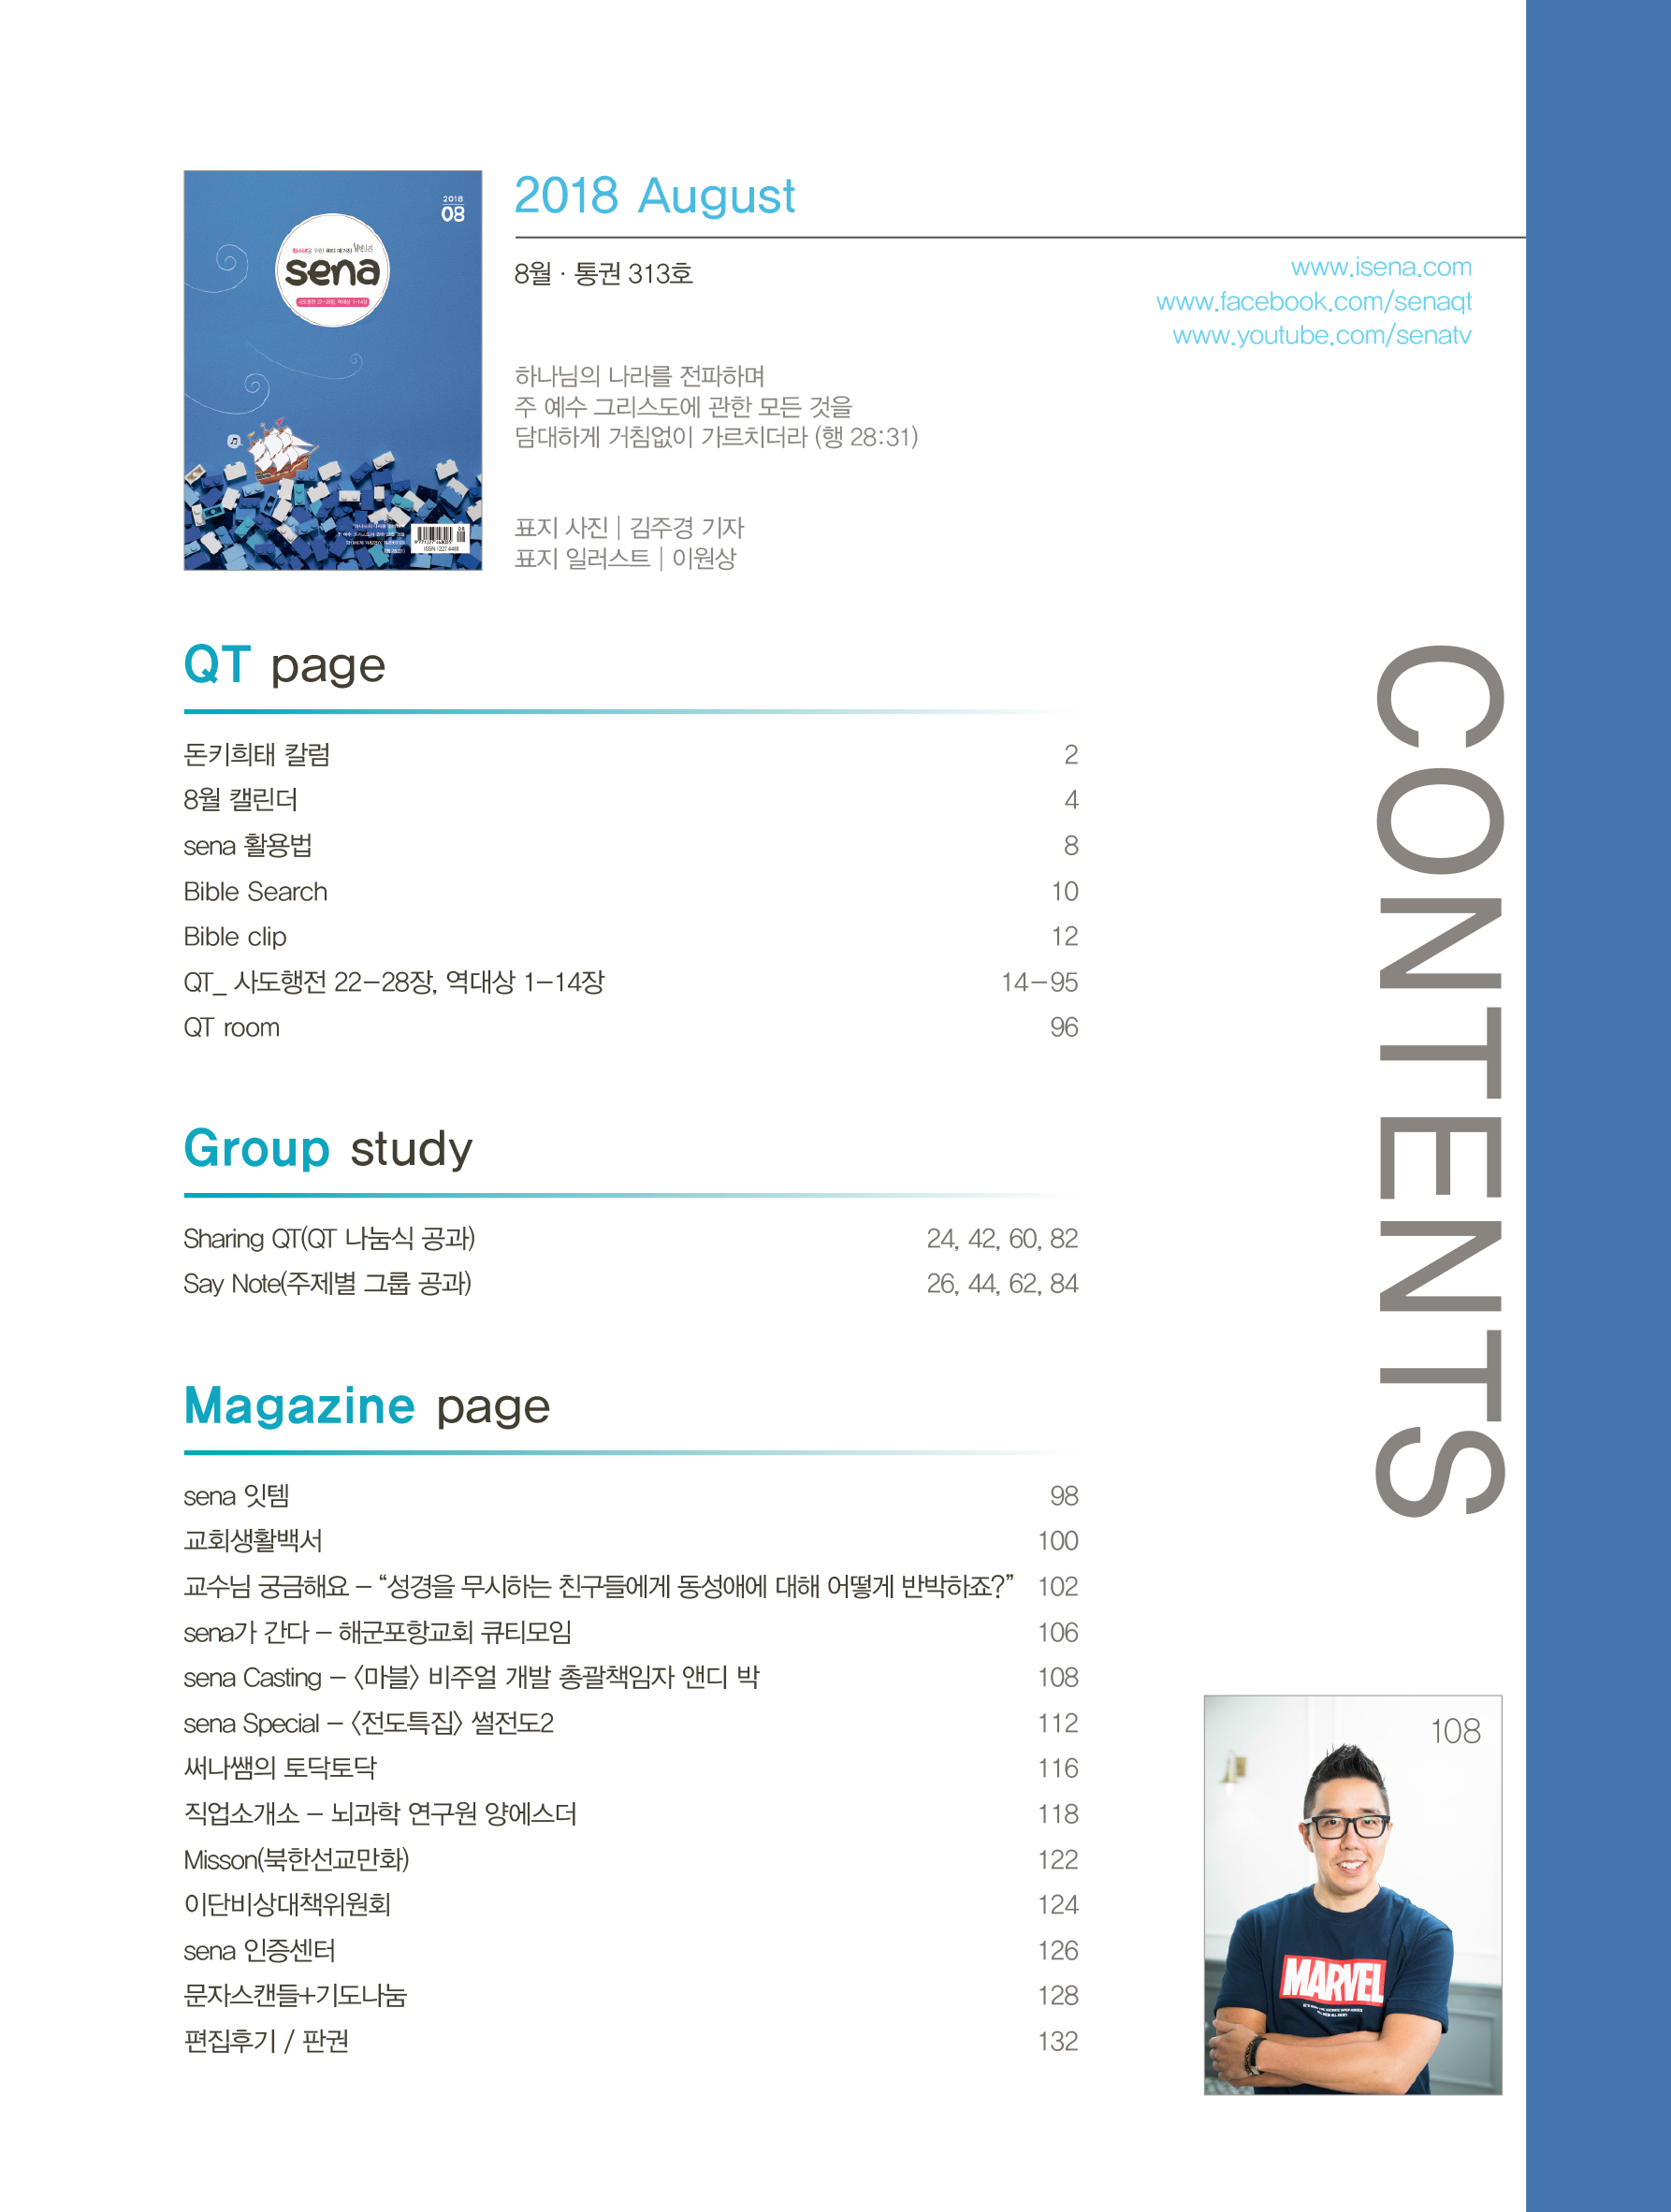 201808 contents